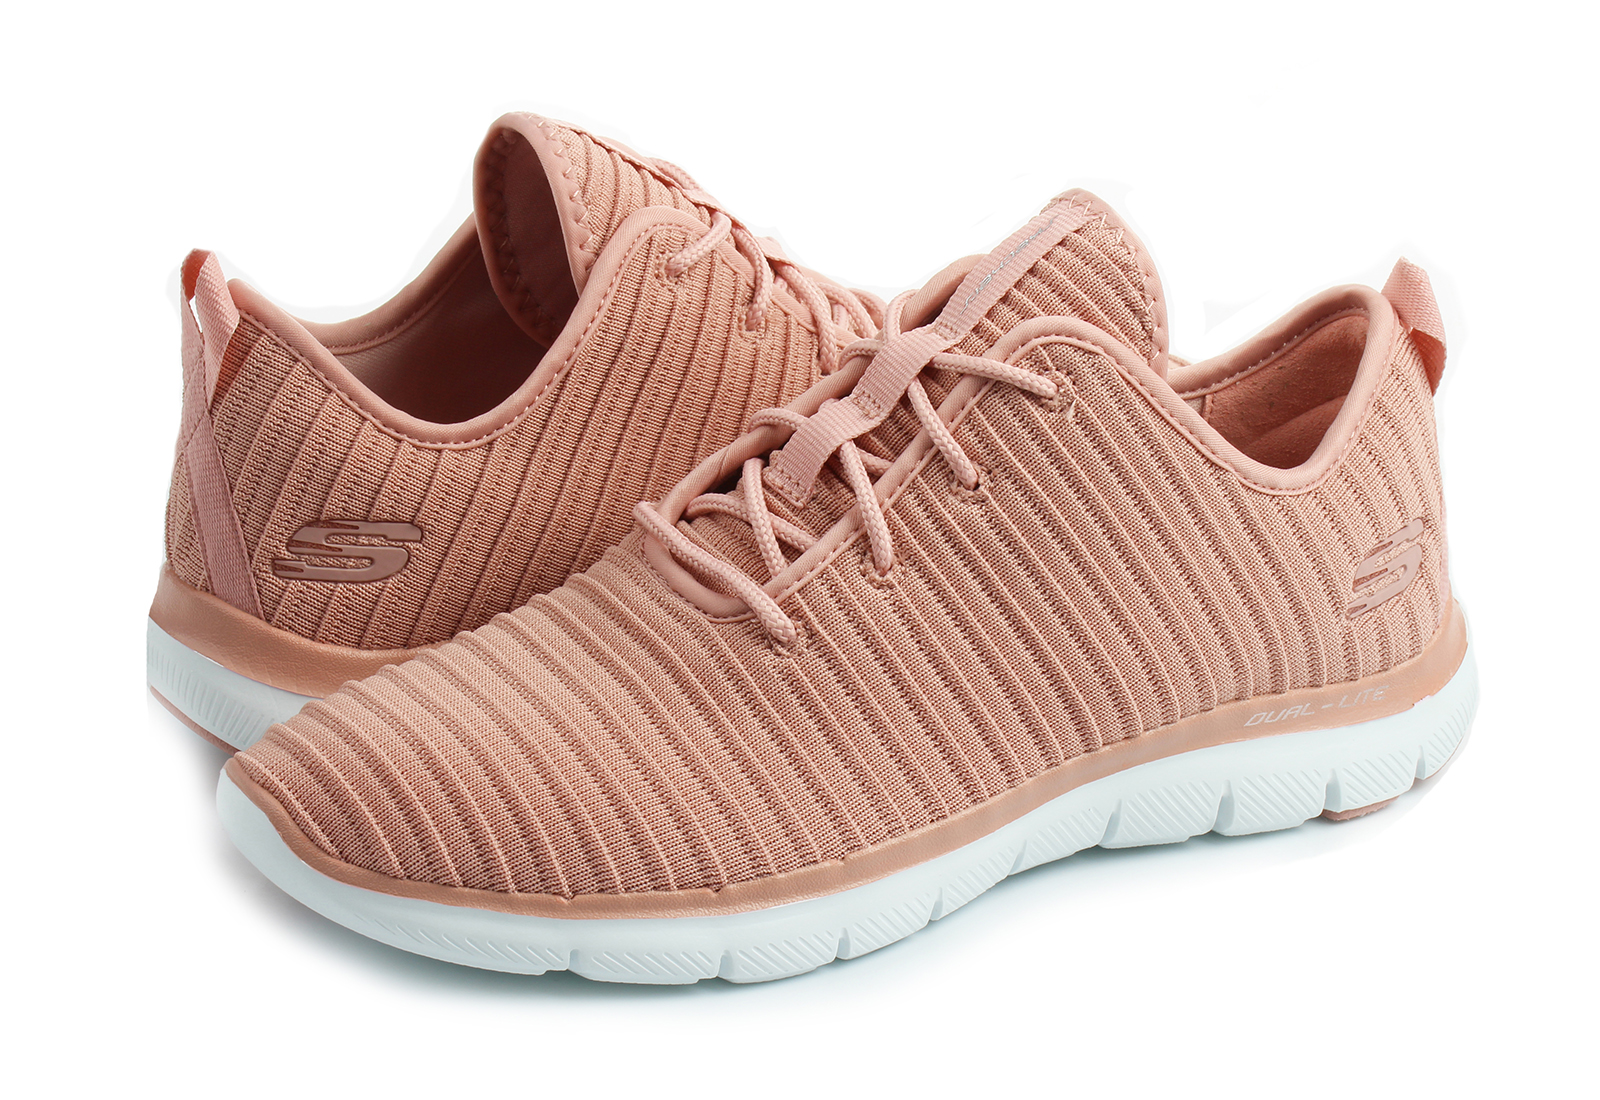 Skechers Cipő - Flex Appeal 2.0 - Estates - 12899-ros - Office Shoes ... af37ae9959